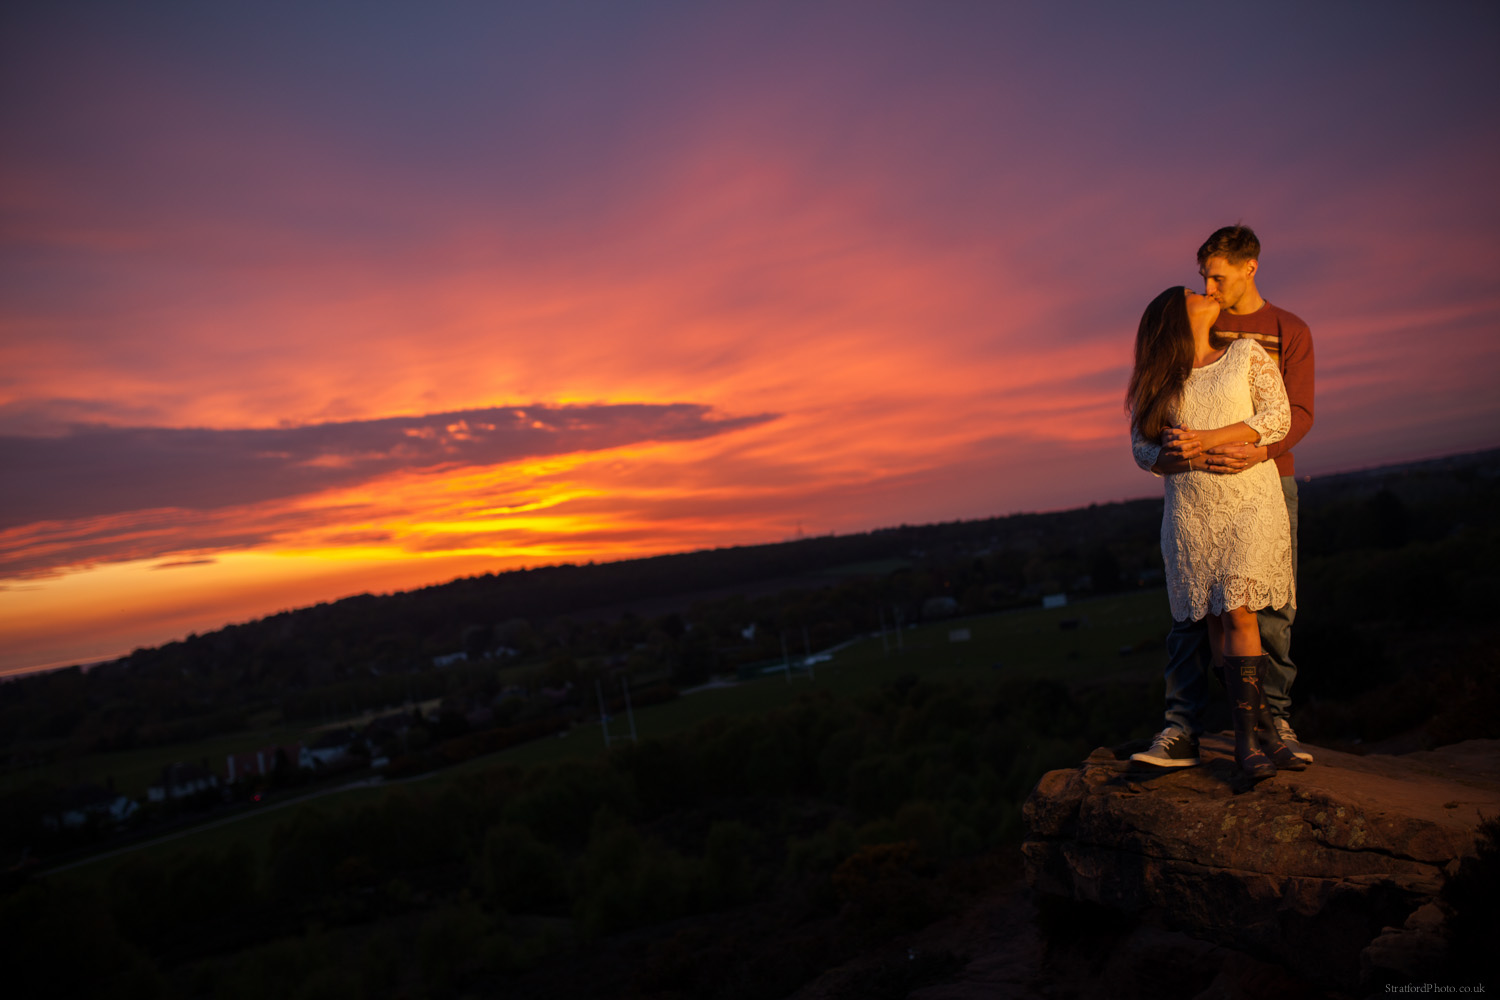 Hayley & David Beautiful Romantic Sunset Prewedding Engagement Shoot at Thurstaston on the Wirral 78.jpg